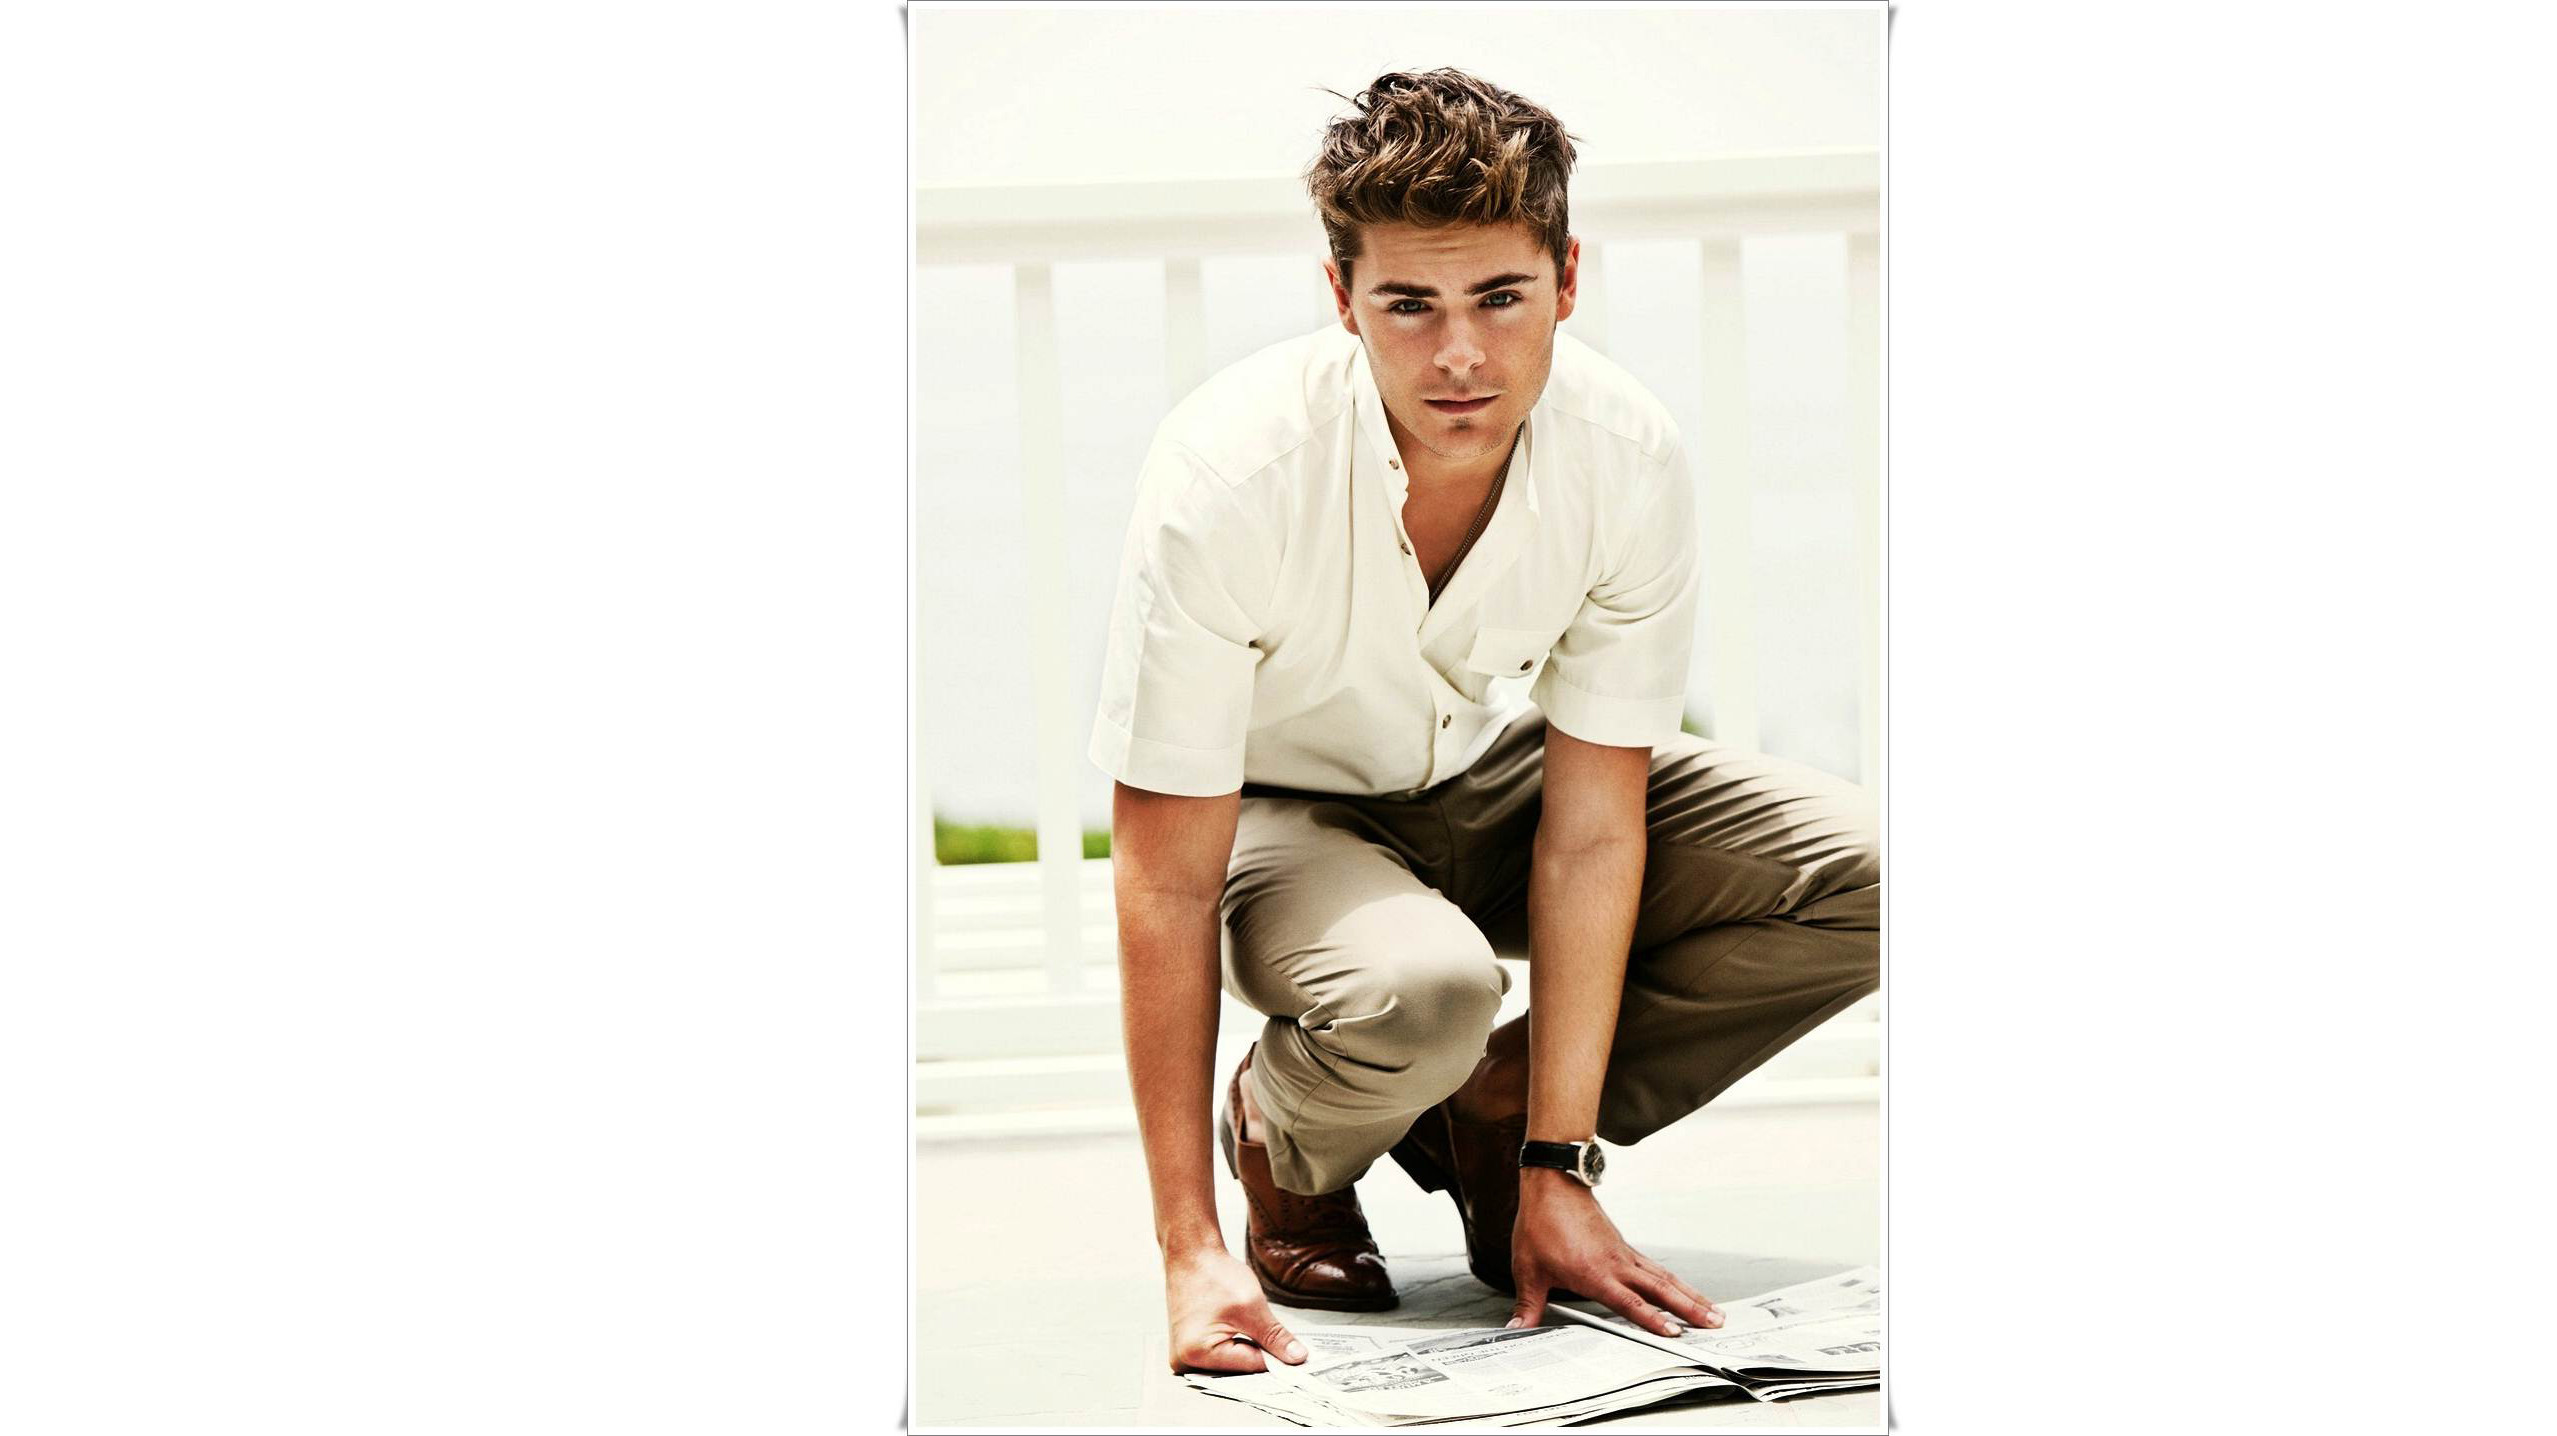 Res: 2557x1436, on November 9, 2015 By admin Comments Off on Zac Efron HD